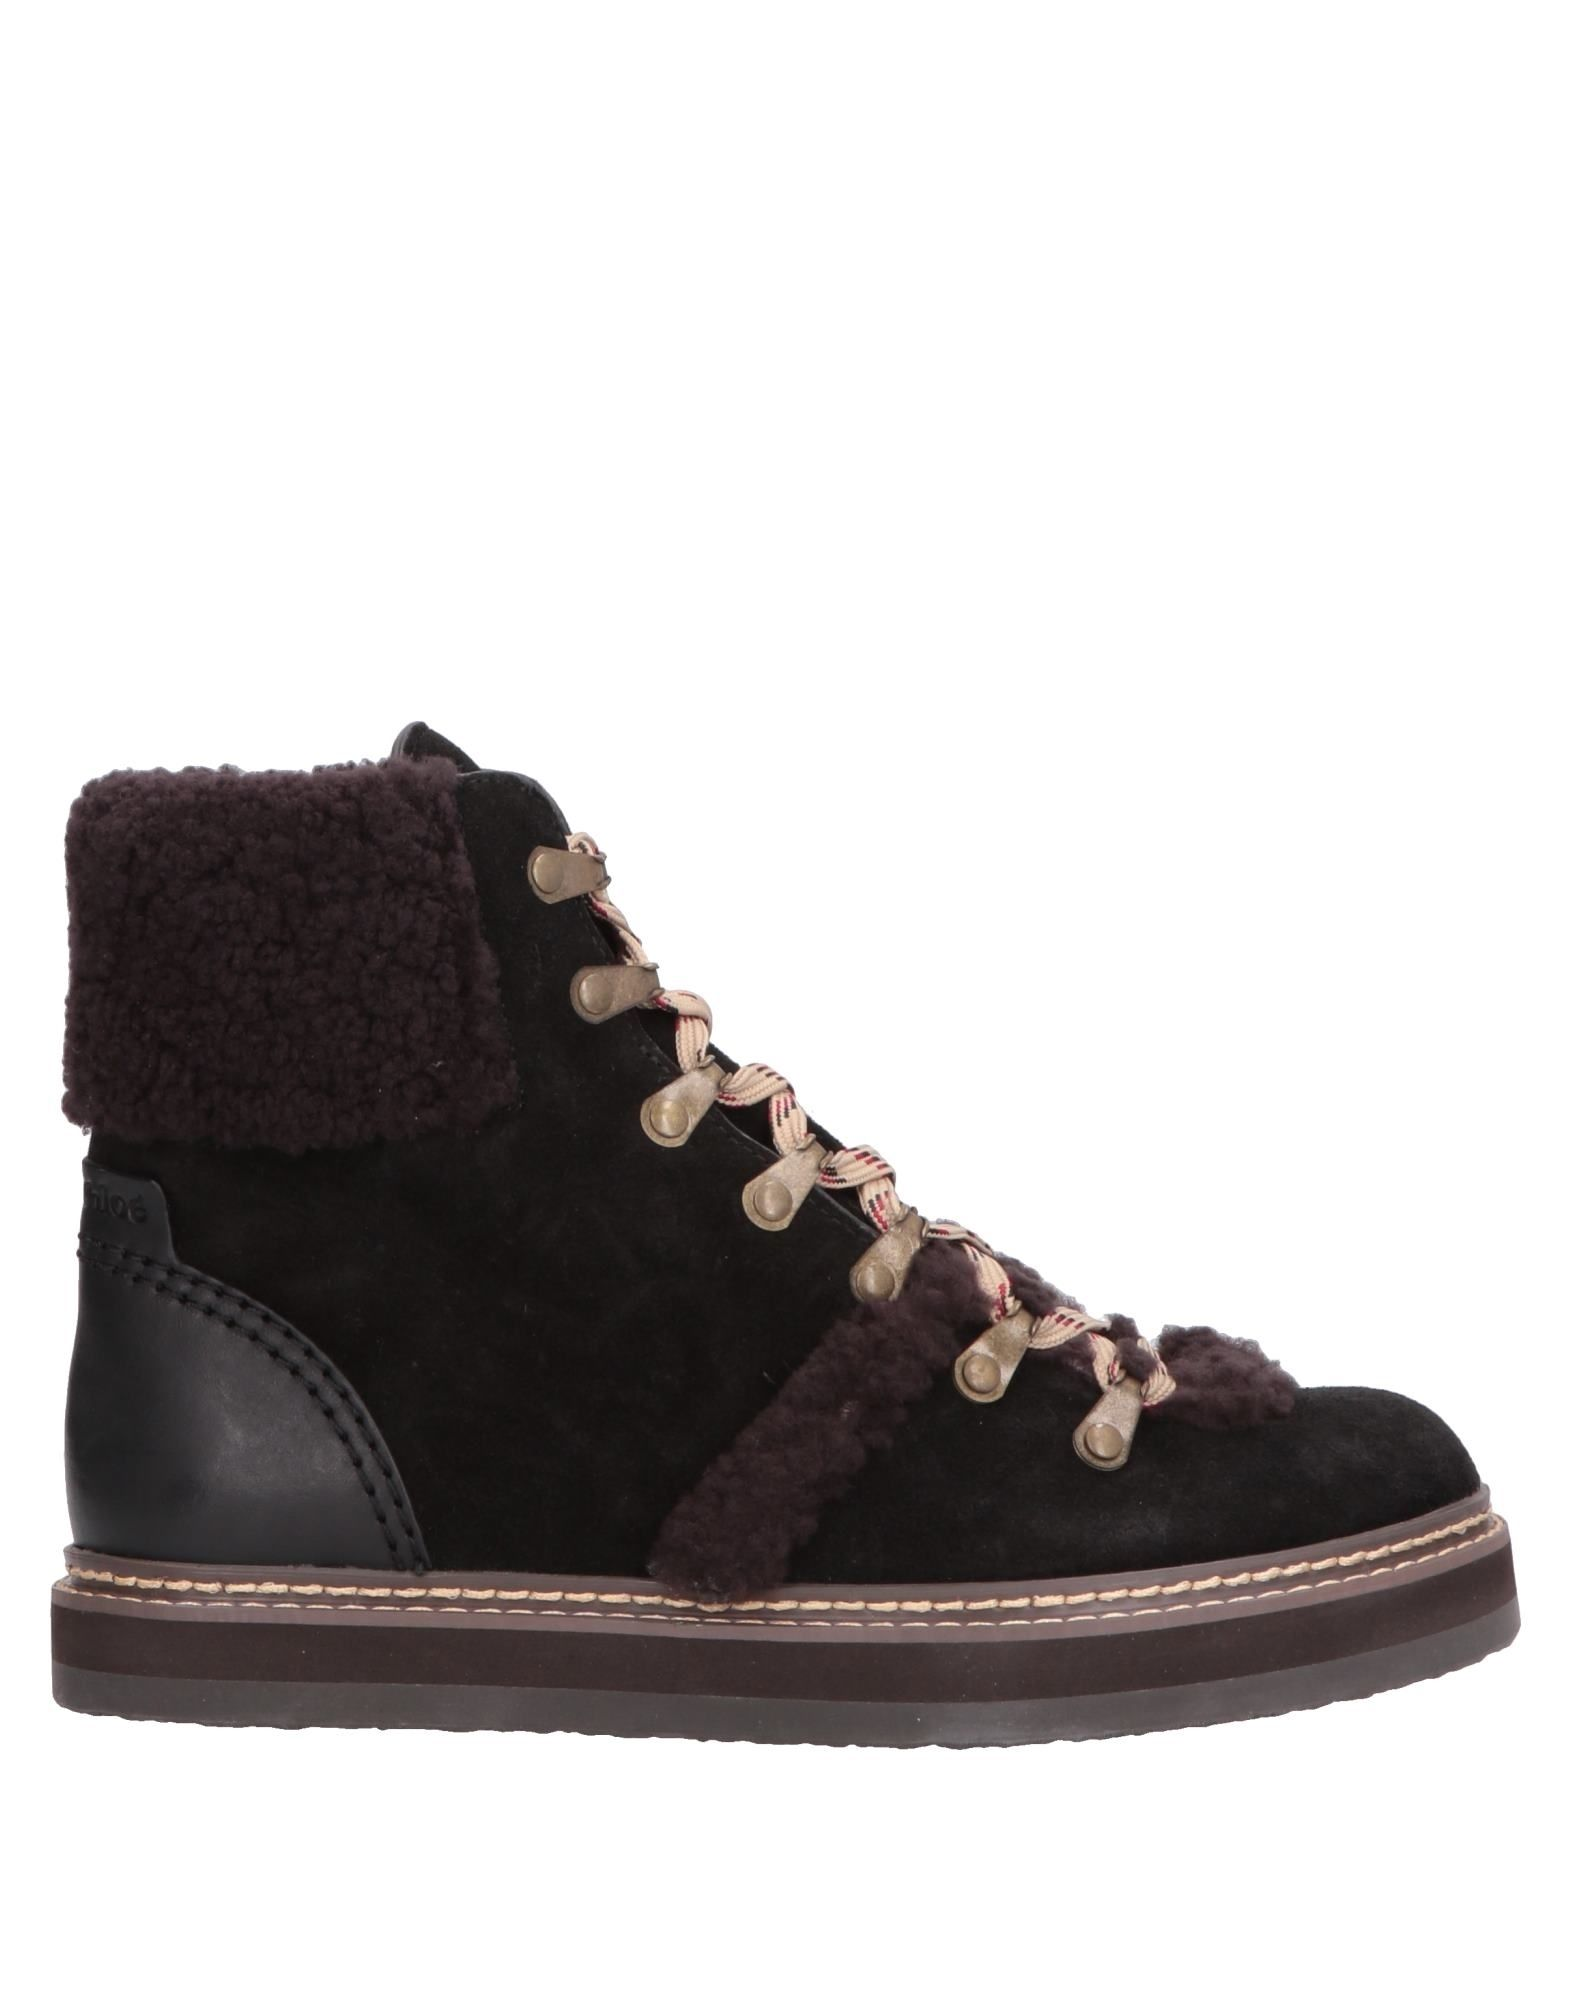 Bottine See By Chloé Femme - Bottines See By Chloé Chocolat Chaussures casual sauvages